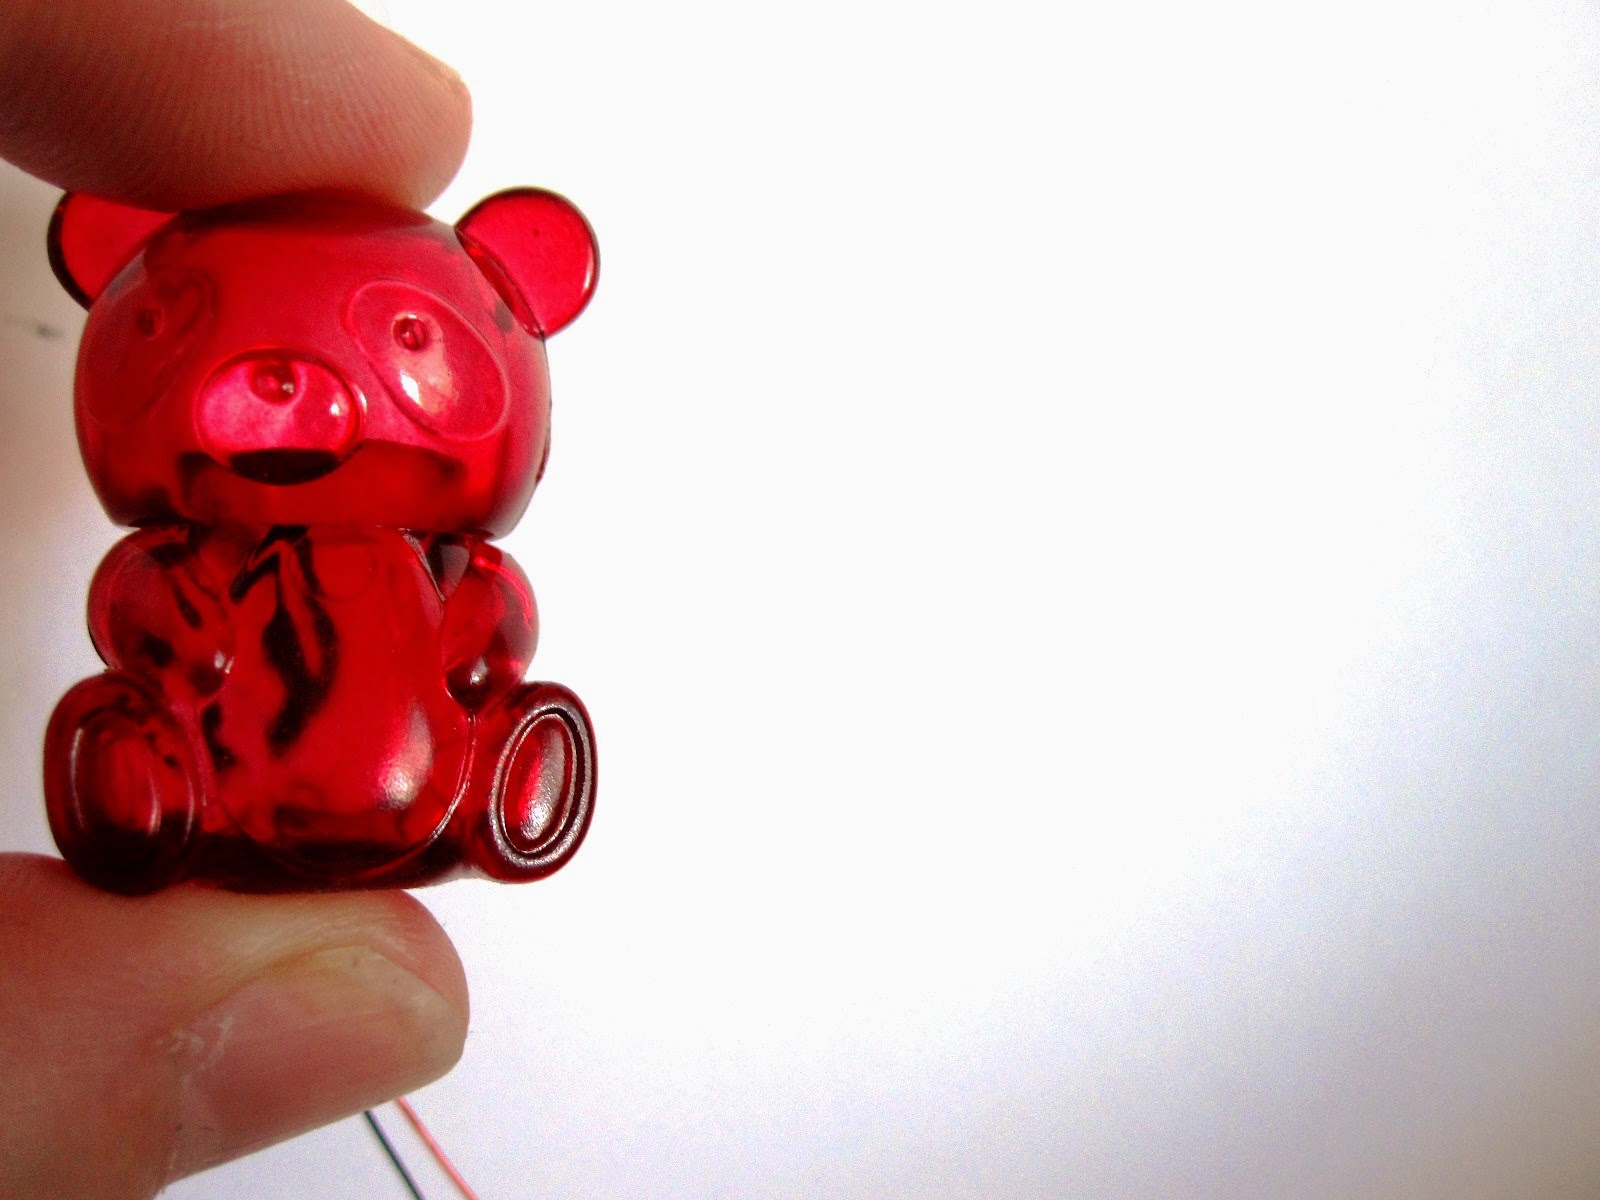 A miniature red plastic bear container held between two fingers.